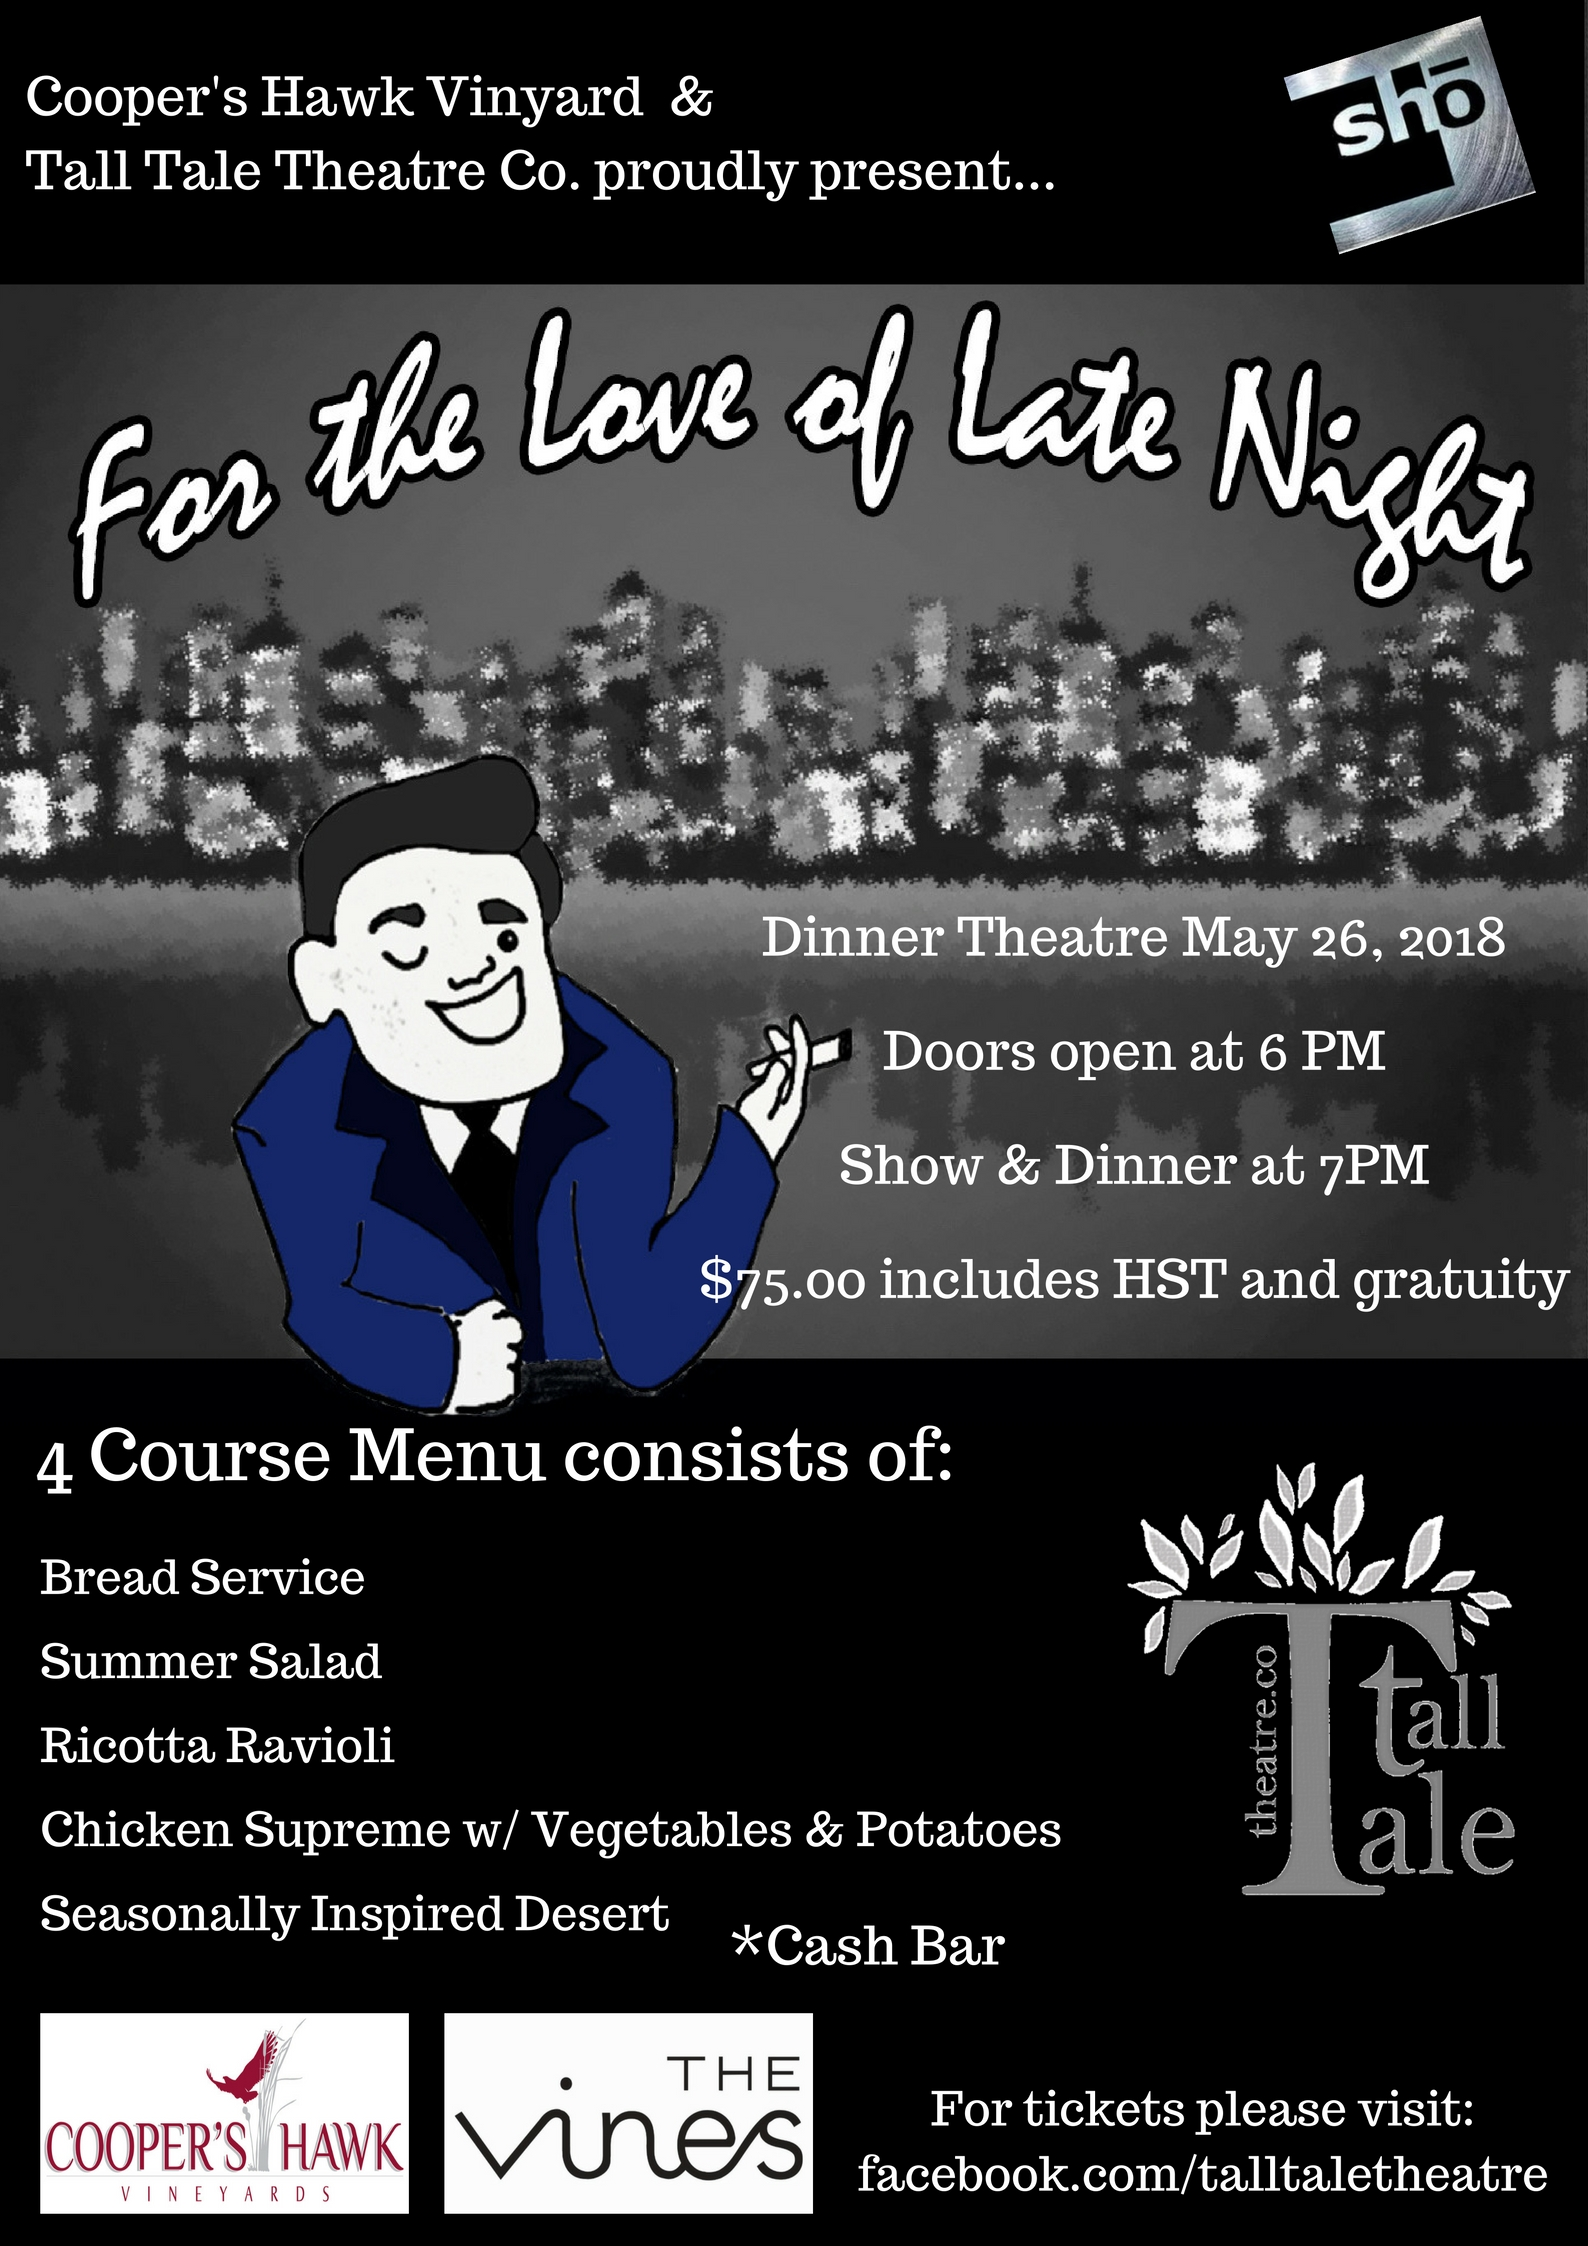 For the Love of Late Night – Dinner Theater at Cooper's Hawk